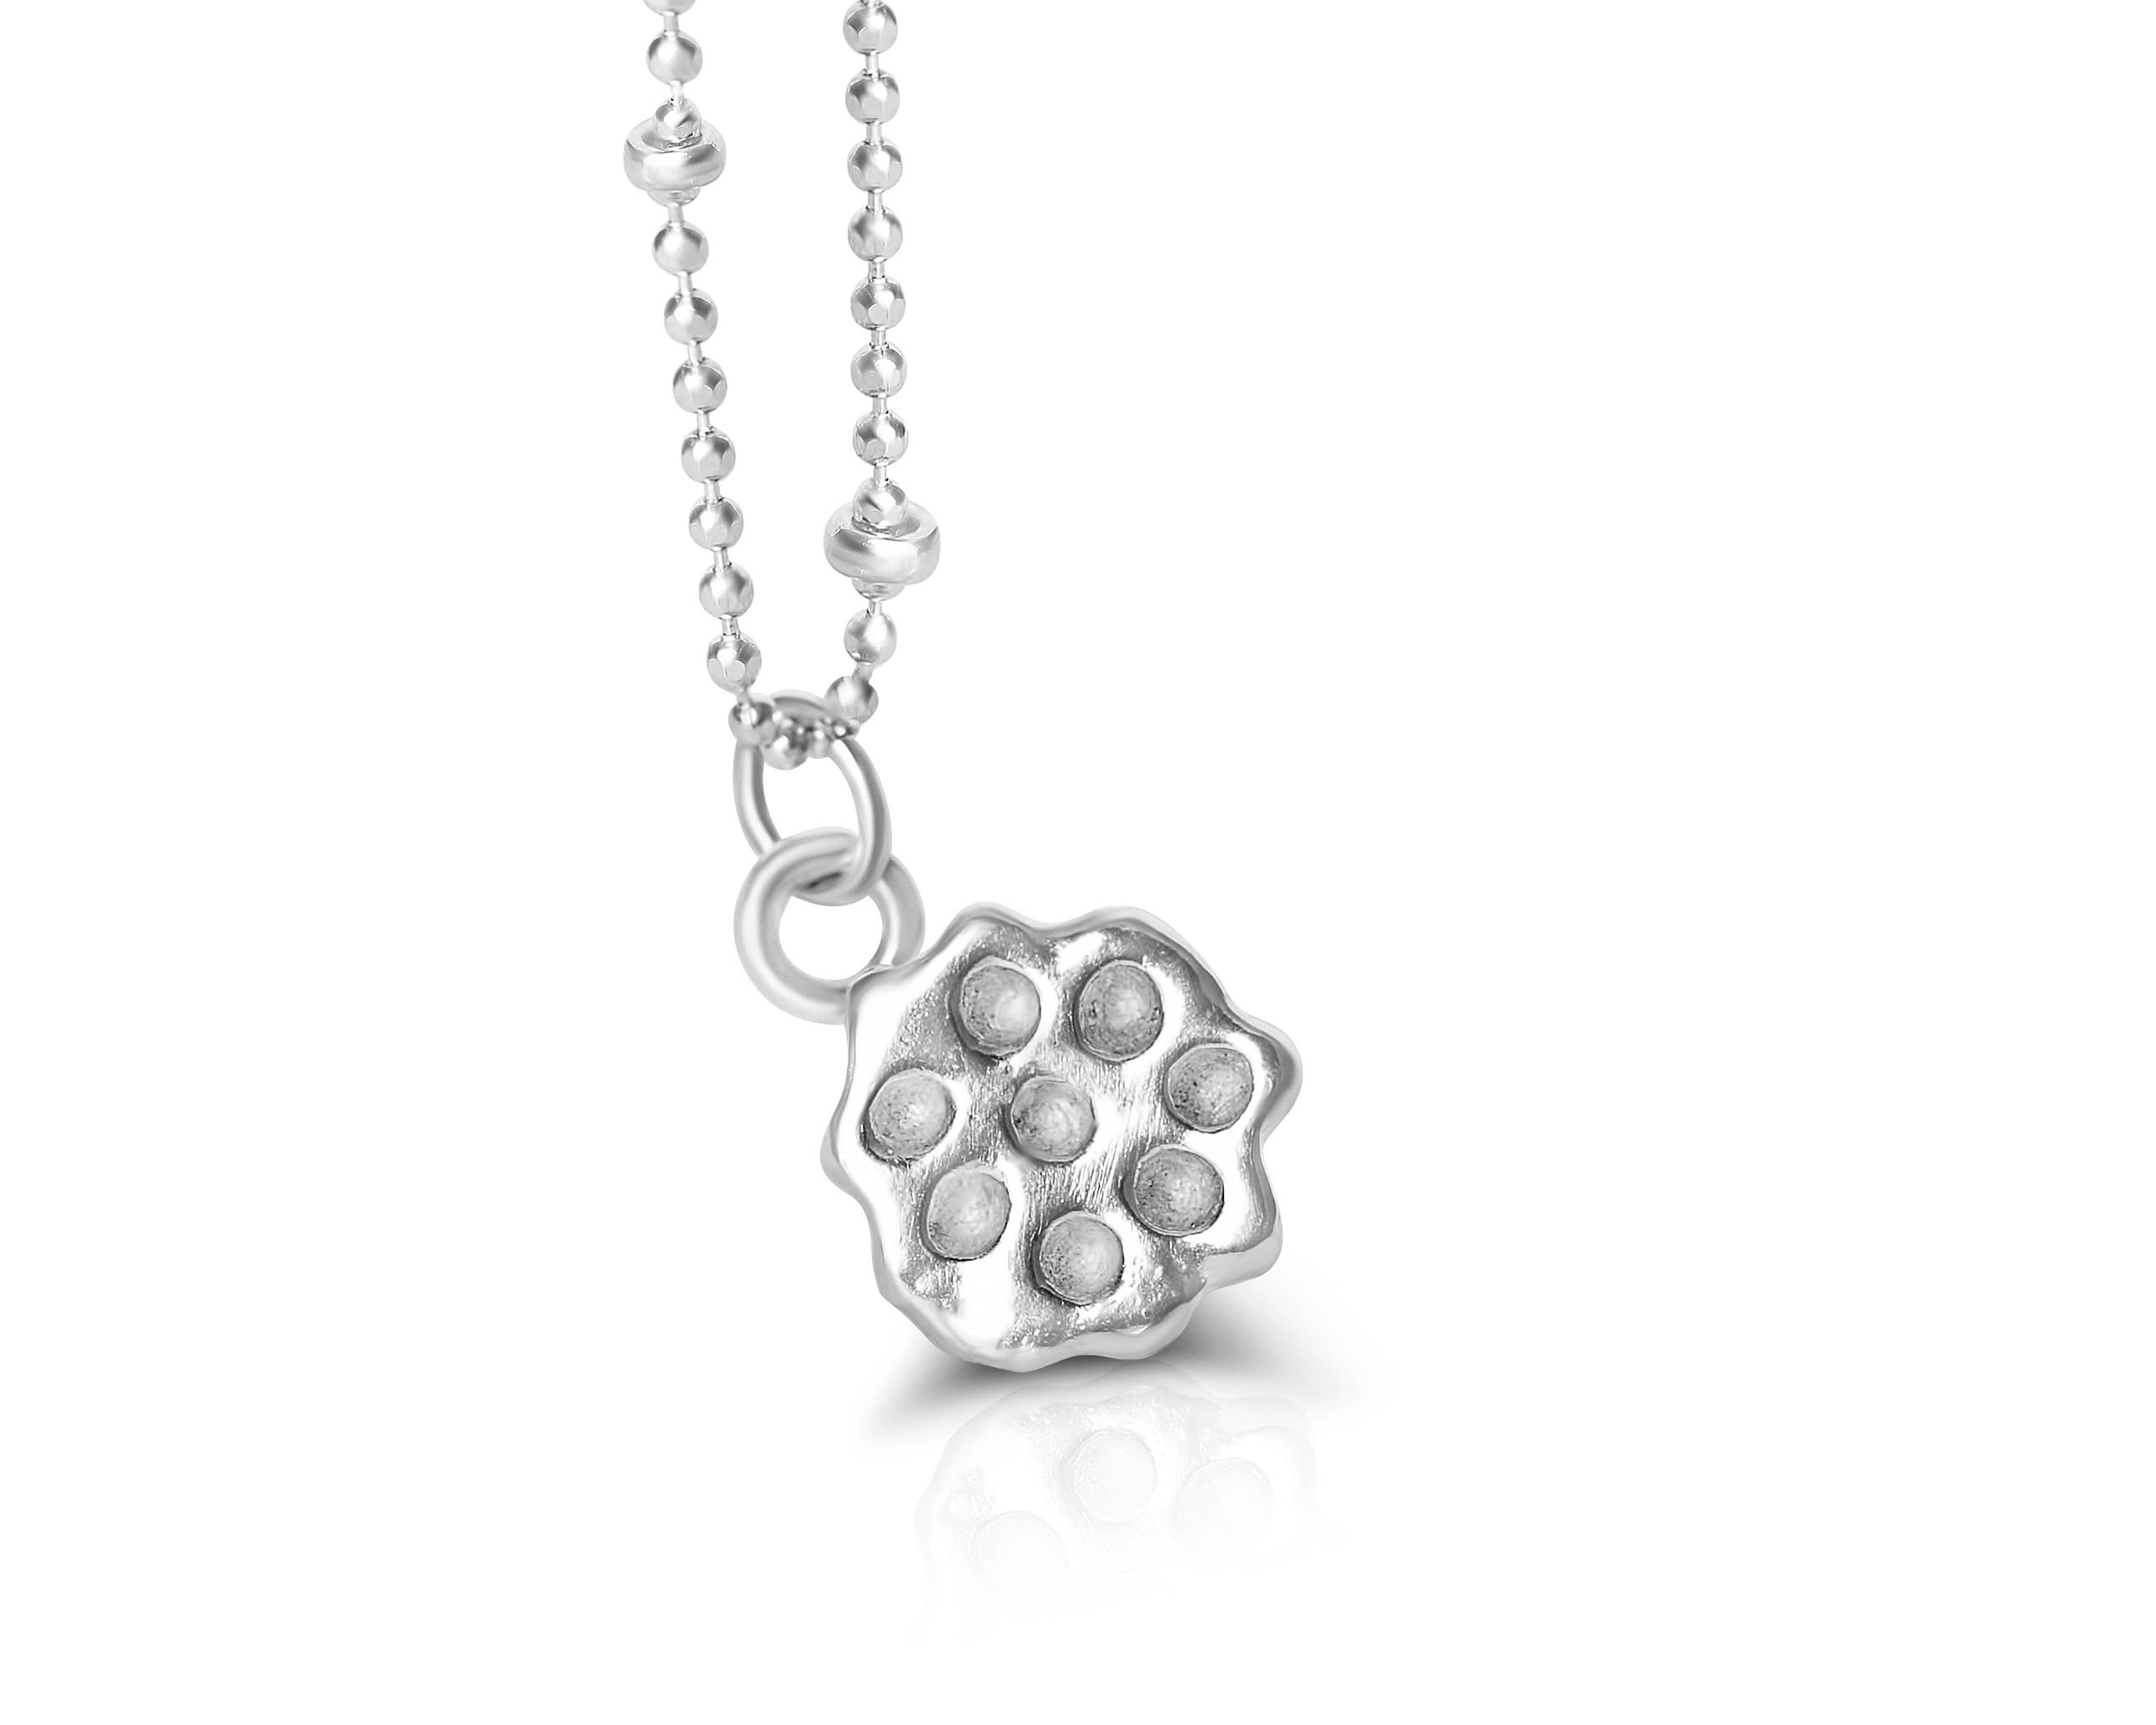 Sterling Silver Lotus Leaf Lotus Leaf Charm Necklace by Charming Little Lotus Botanical Lotus Flower Gifts Silver Lotus Jewelry